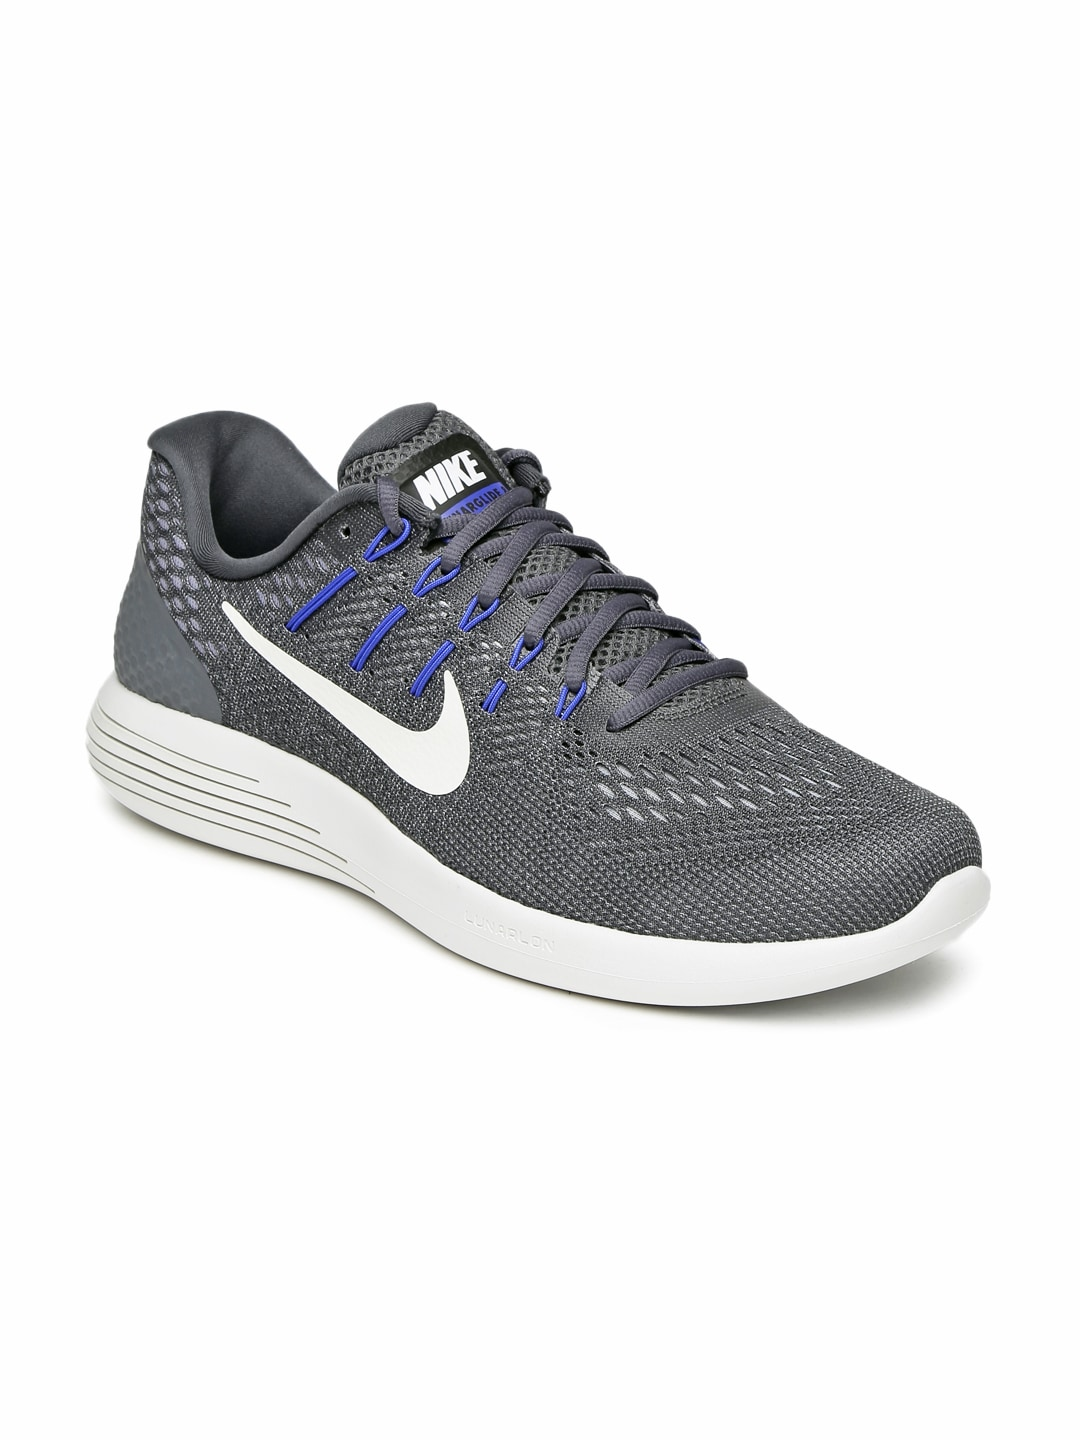 Nike 843725-013 Men Charcoal Grey Lunarglide 8 Running Shoes- Price in India 6c3eae4c1